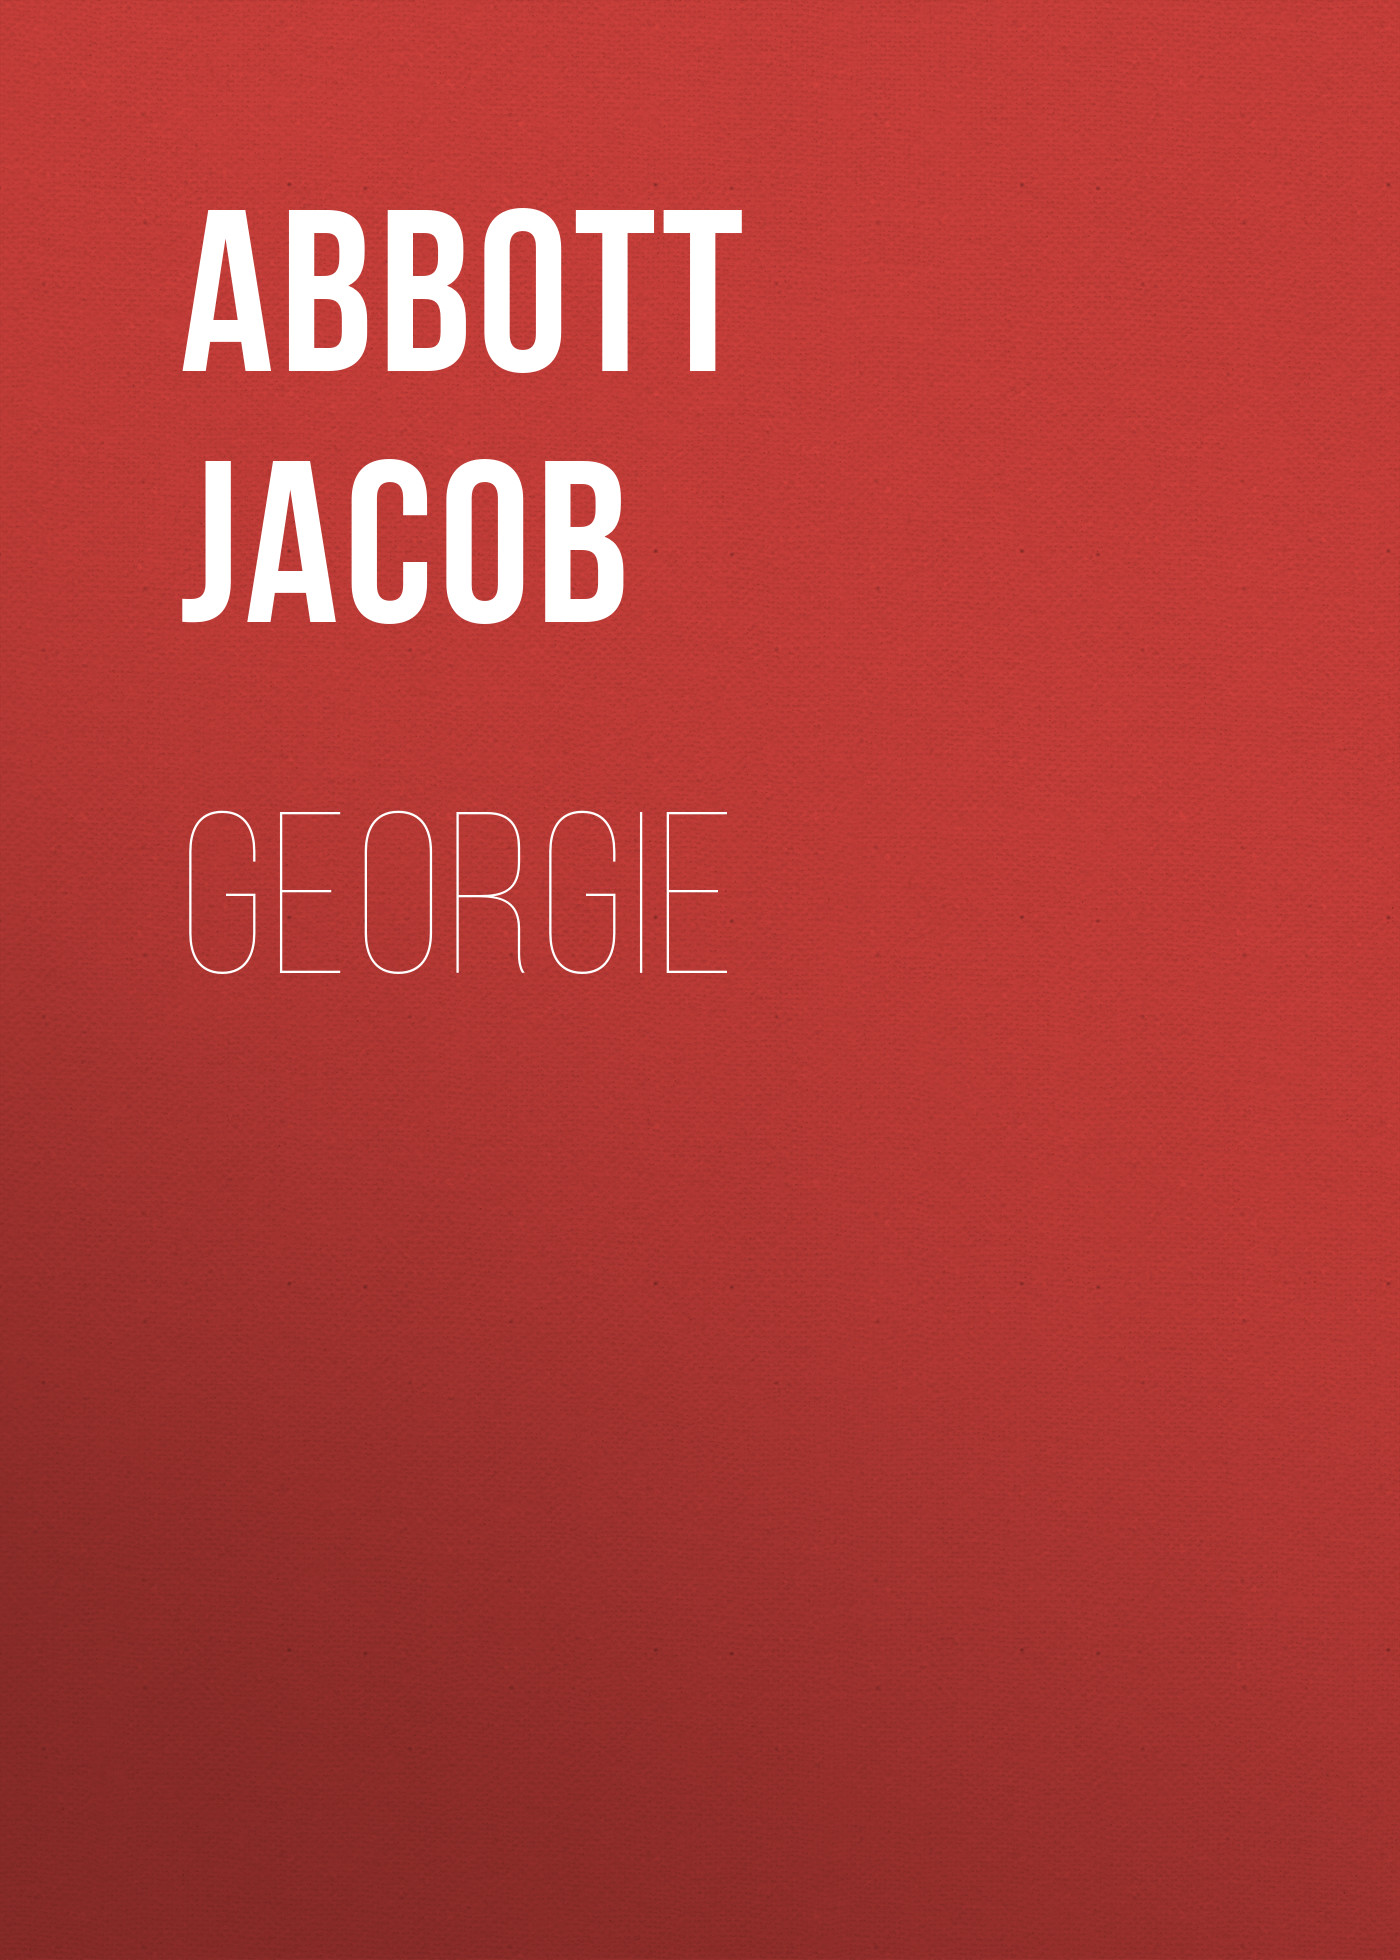 Abbott Jacob Georgie jacob abbott charles i